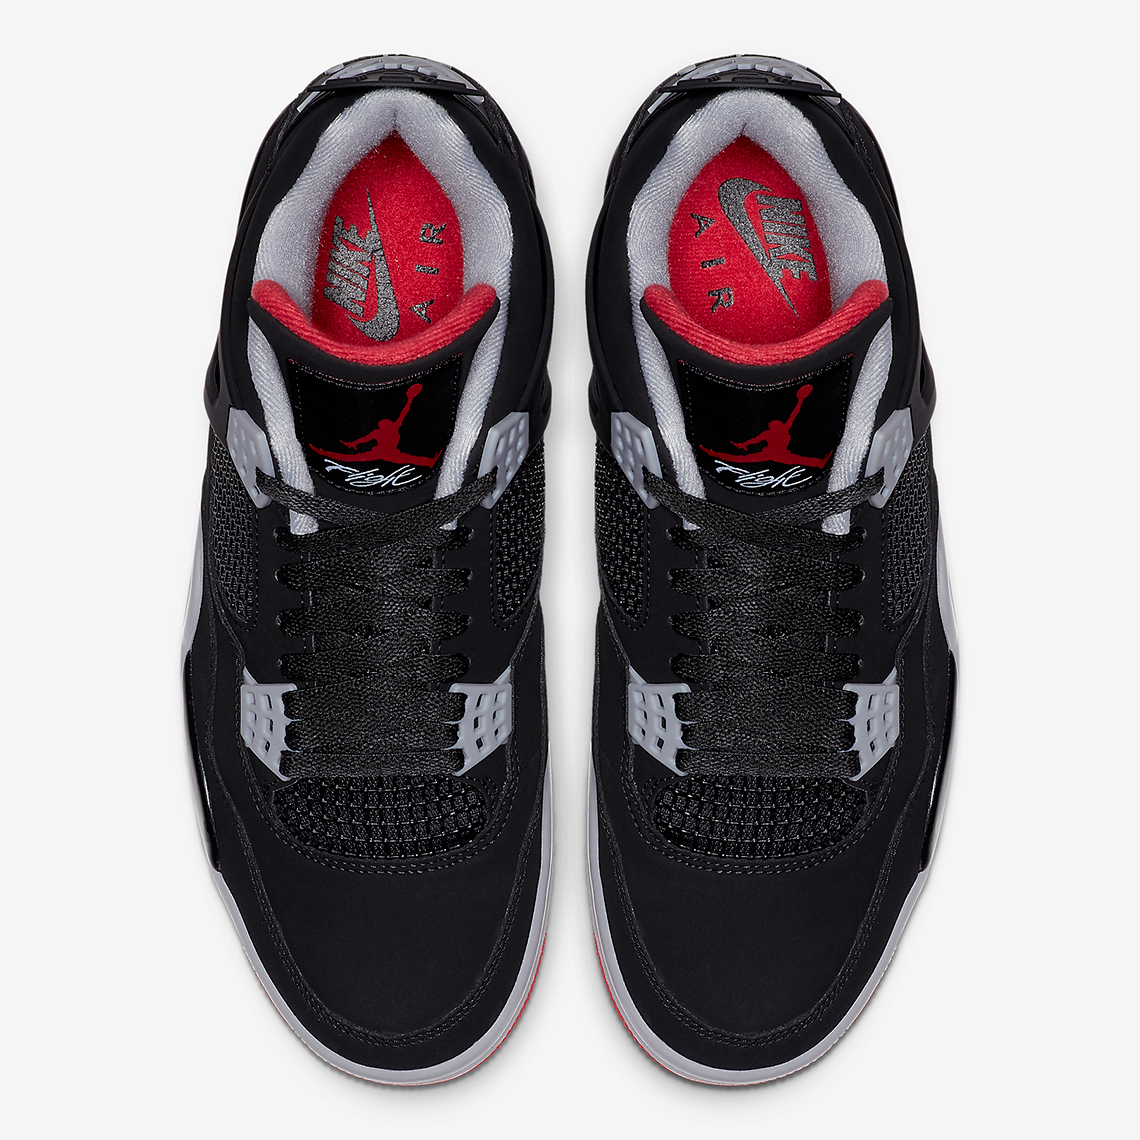 low priced b80c2 6ce82 Nike Gives an Official Look at the Air Jordan 4